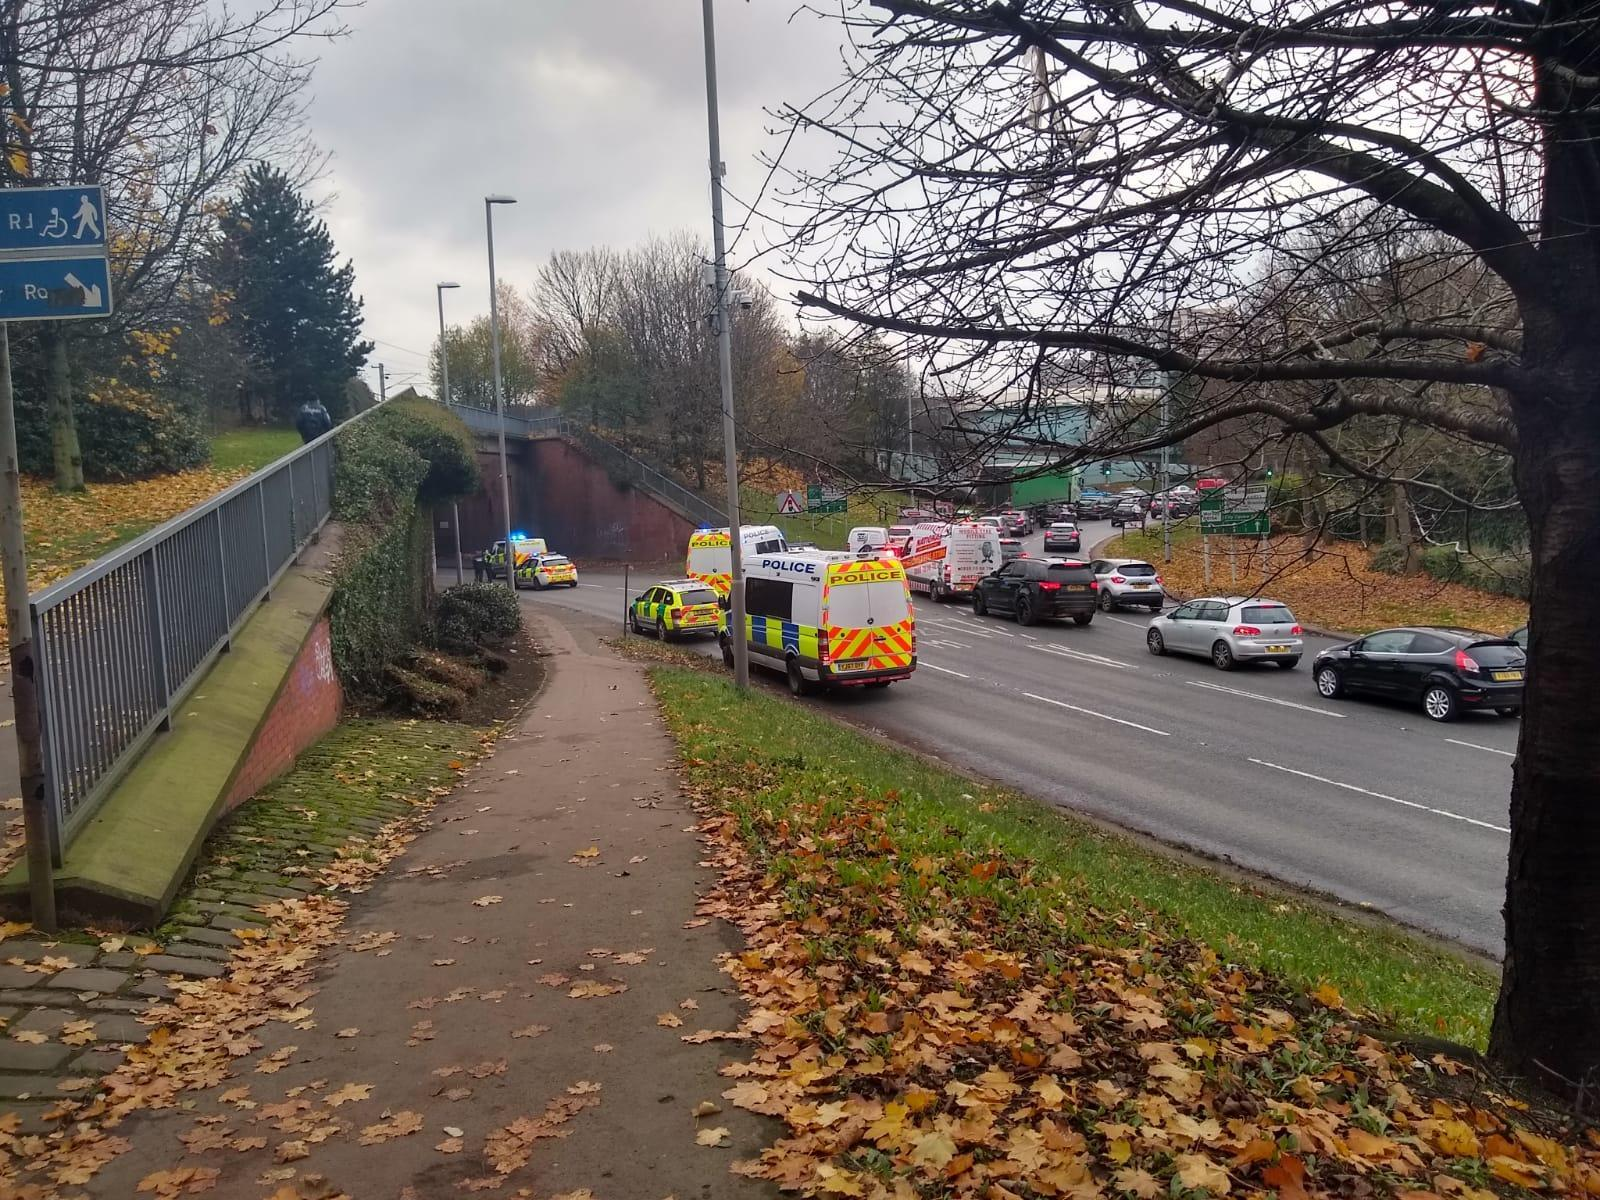 Live updates as Armley Gyratory in Leeds closed due to ongoing incident